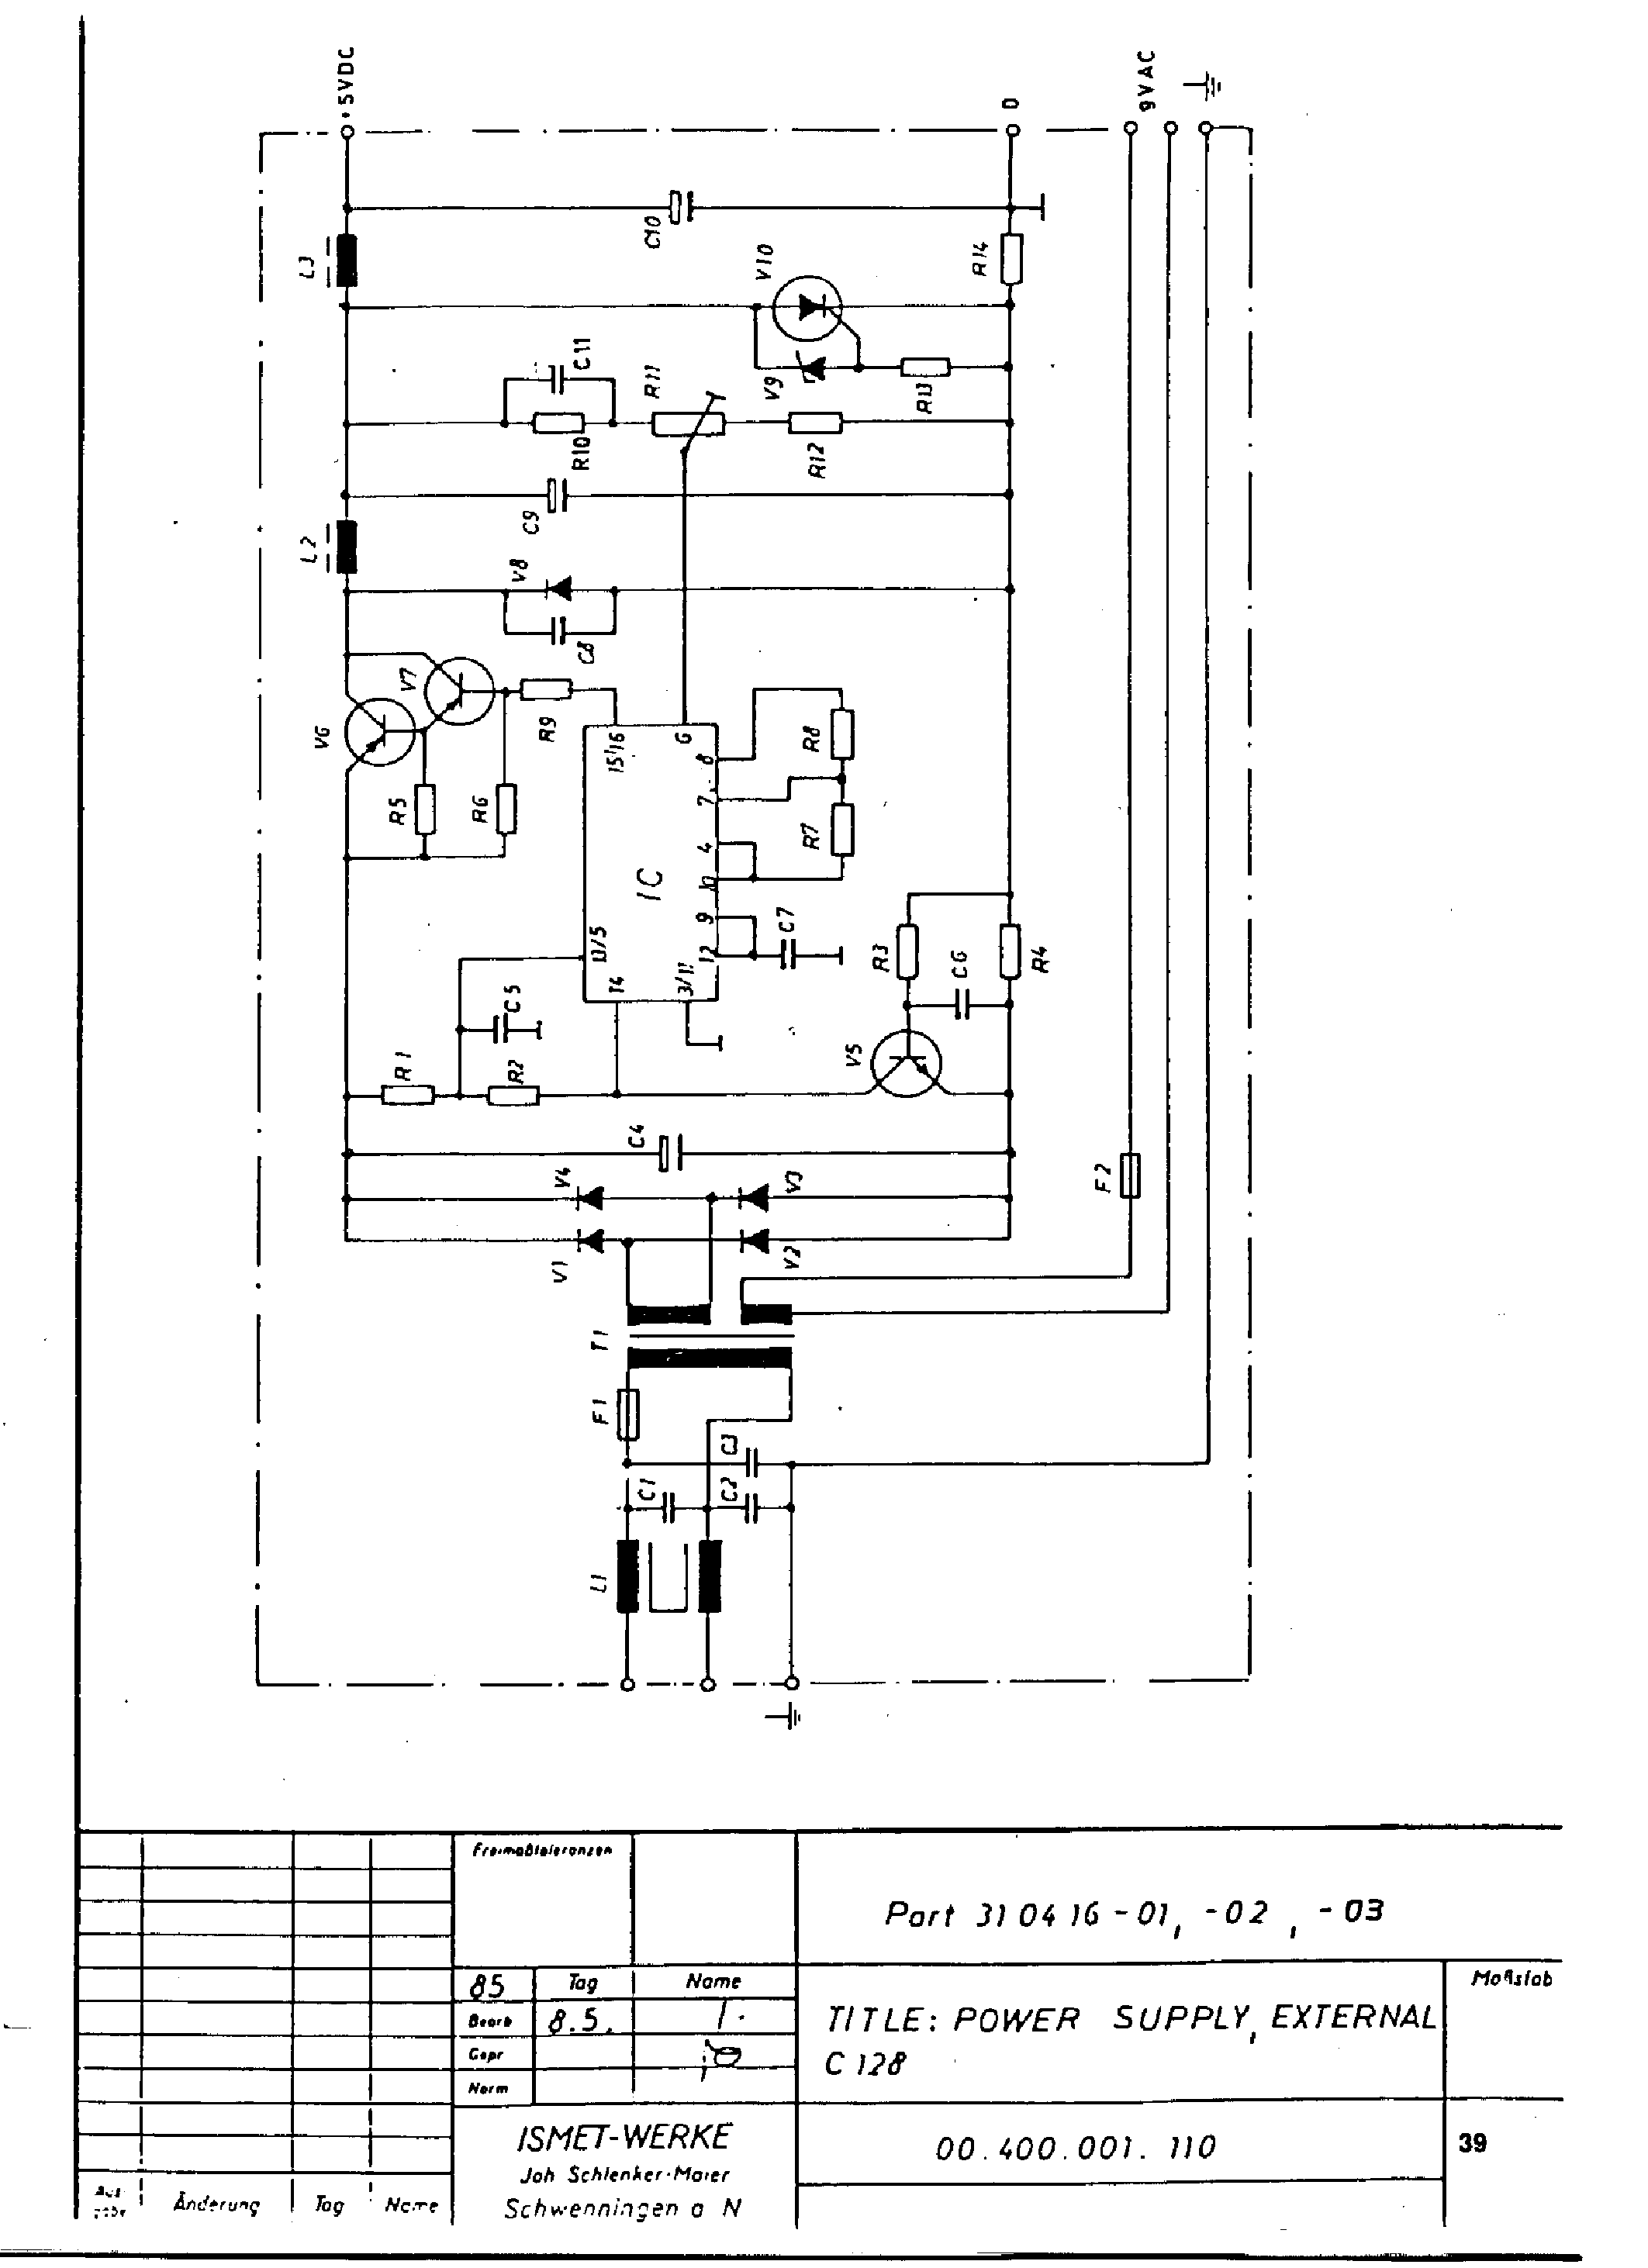 commodore c128 power supply schematics service manual download rh elektrotanya com Commodore 128 Games commodore 128 service manual pdf